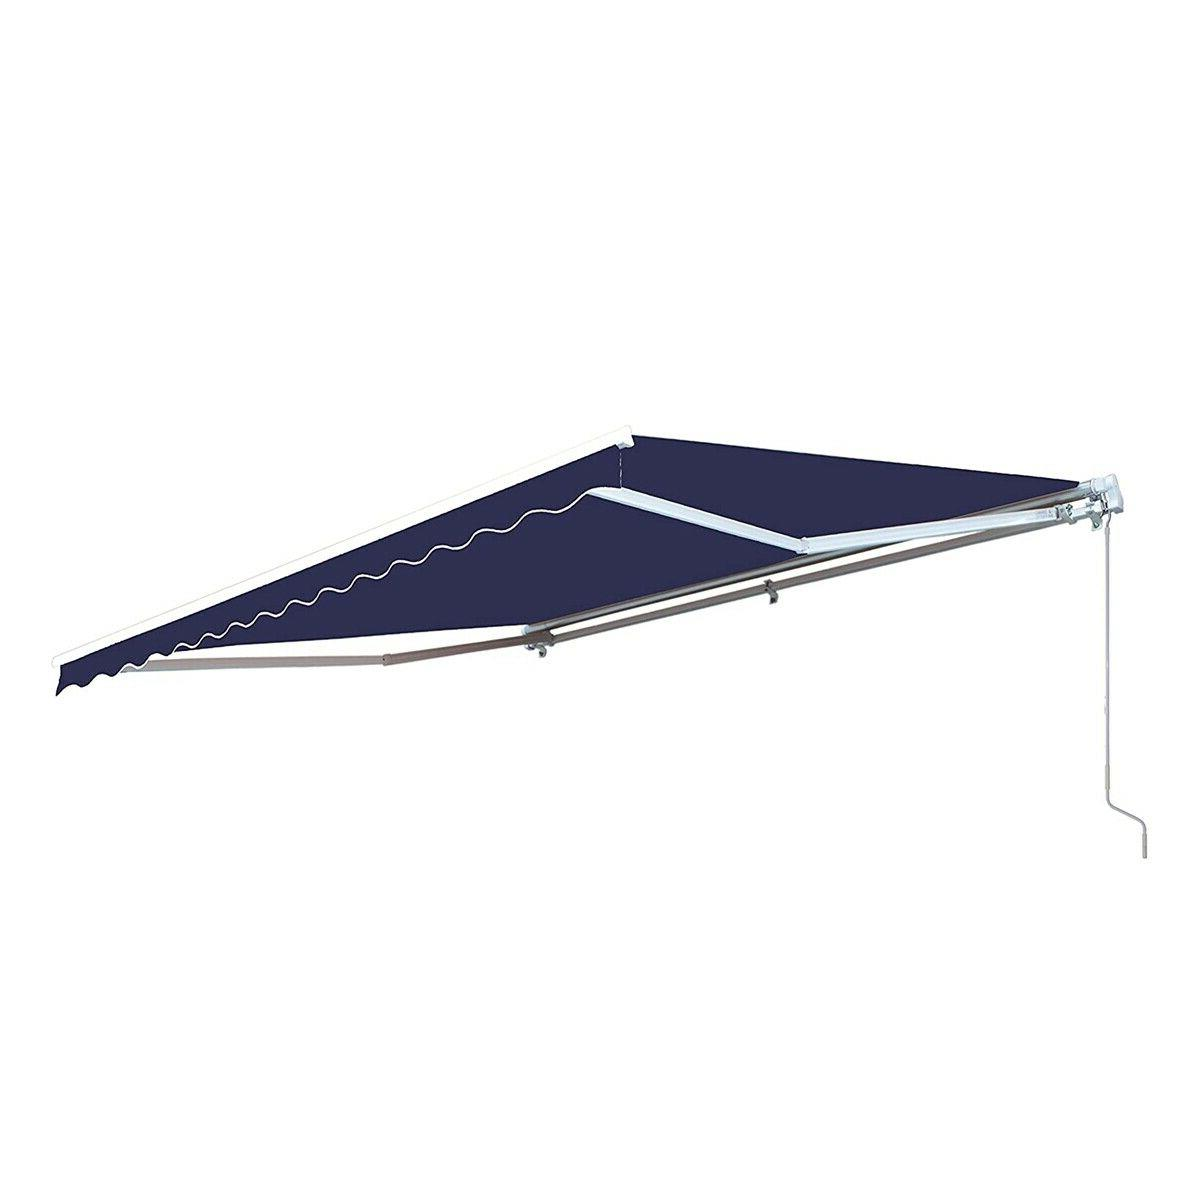 Blue Patio Retractable Awning Deck Canopy Shelter